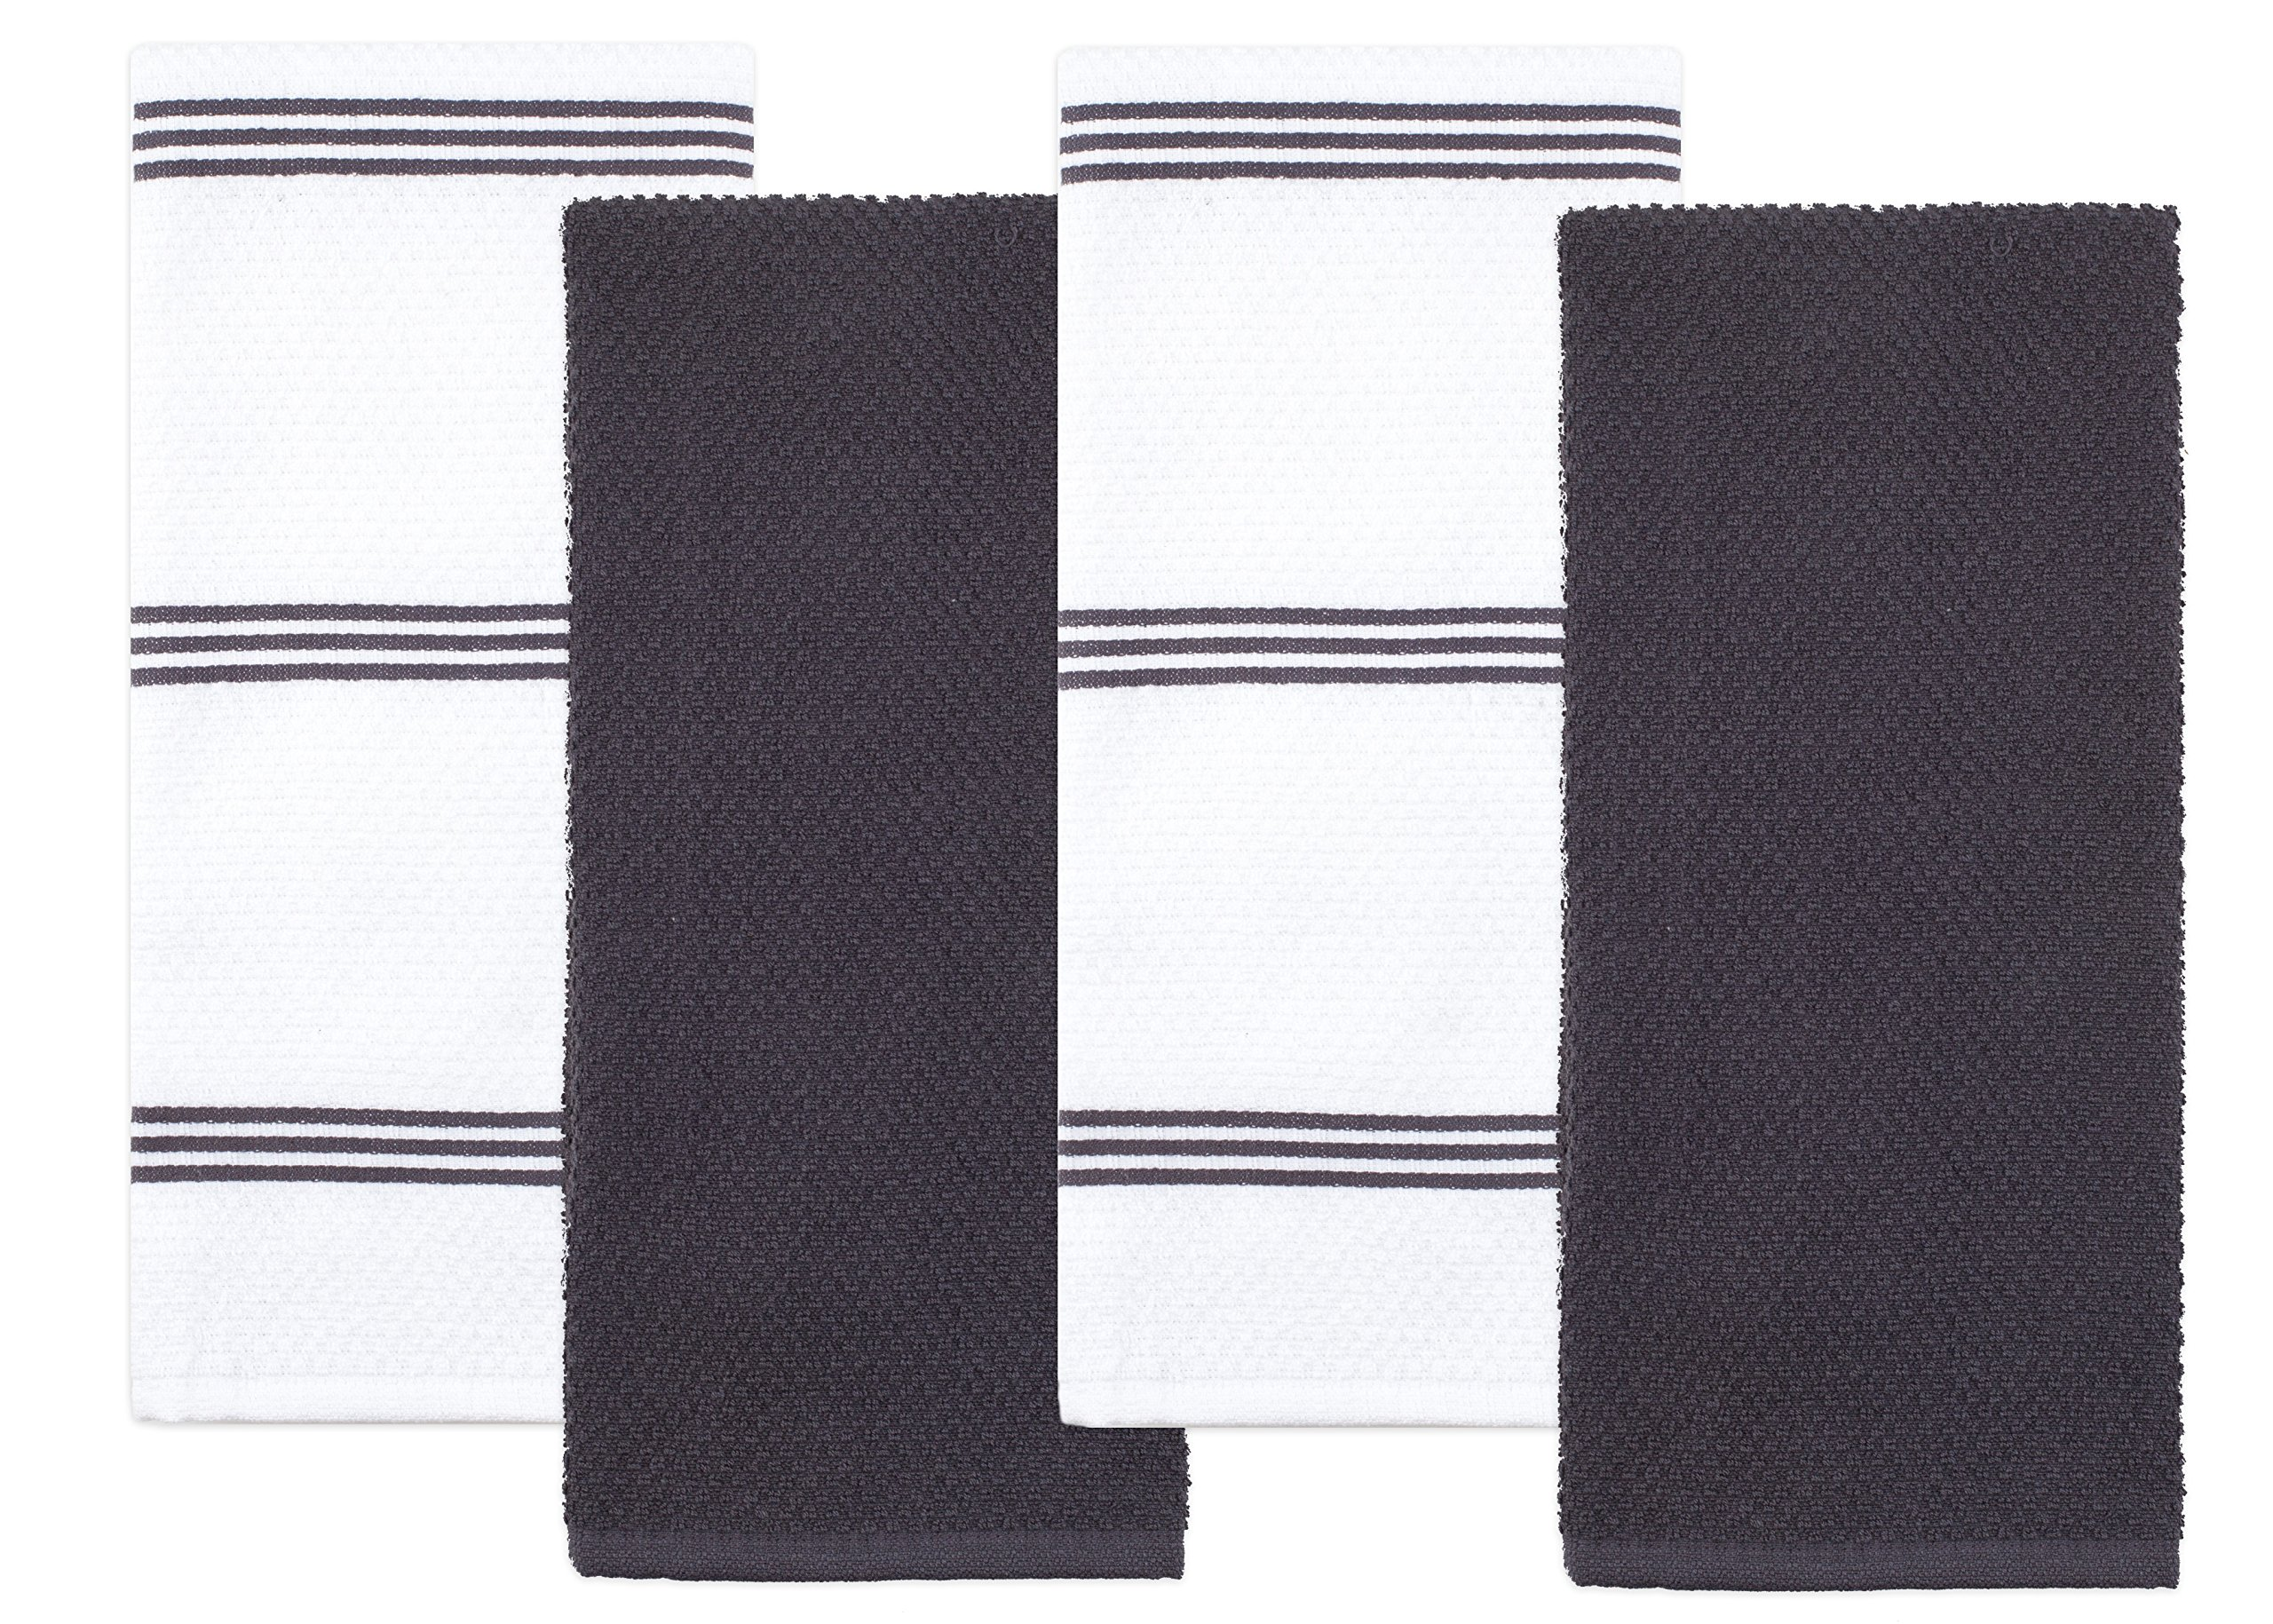 Sticky Toffee Cotton Terry Kitchen Dish Towel, Gray, 4 Pack, 28 in x 16 in by Sticky Toffee